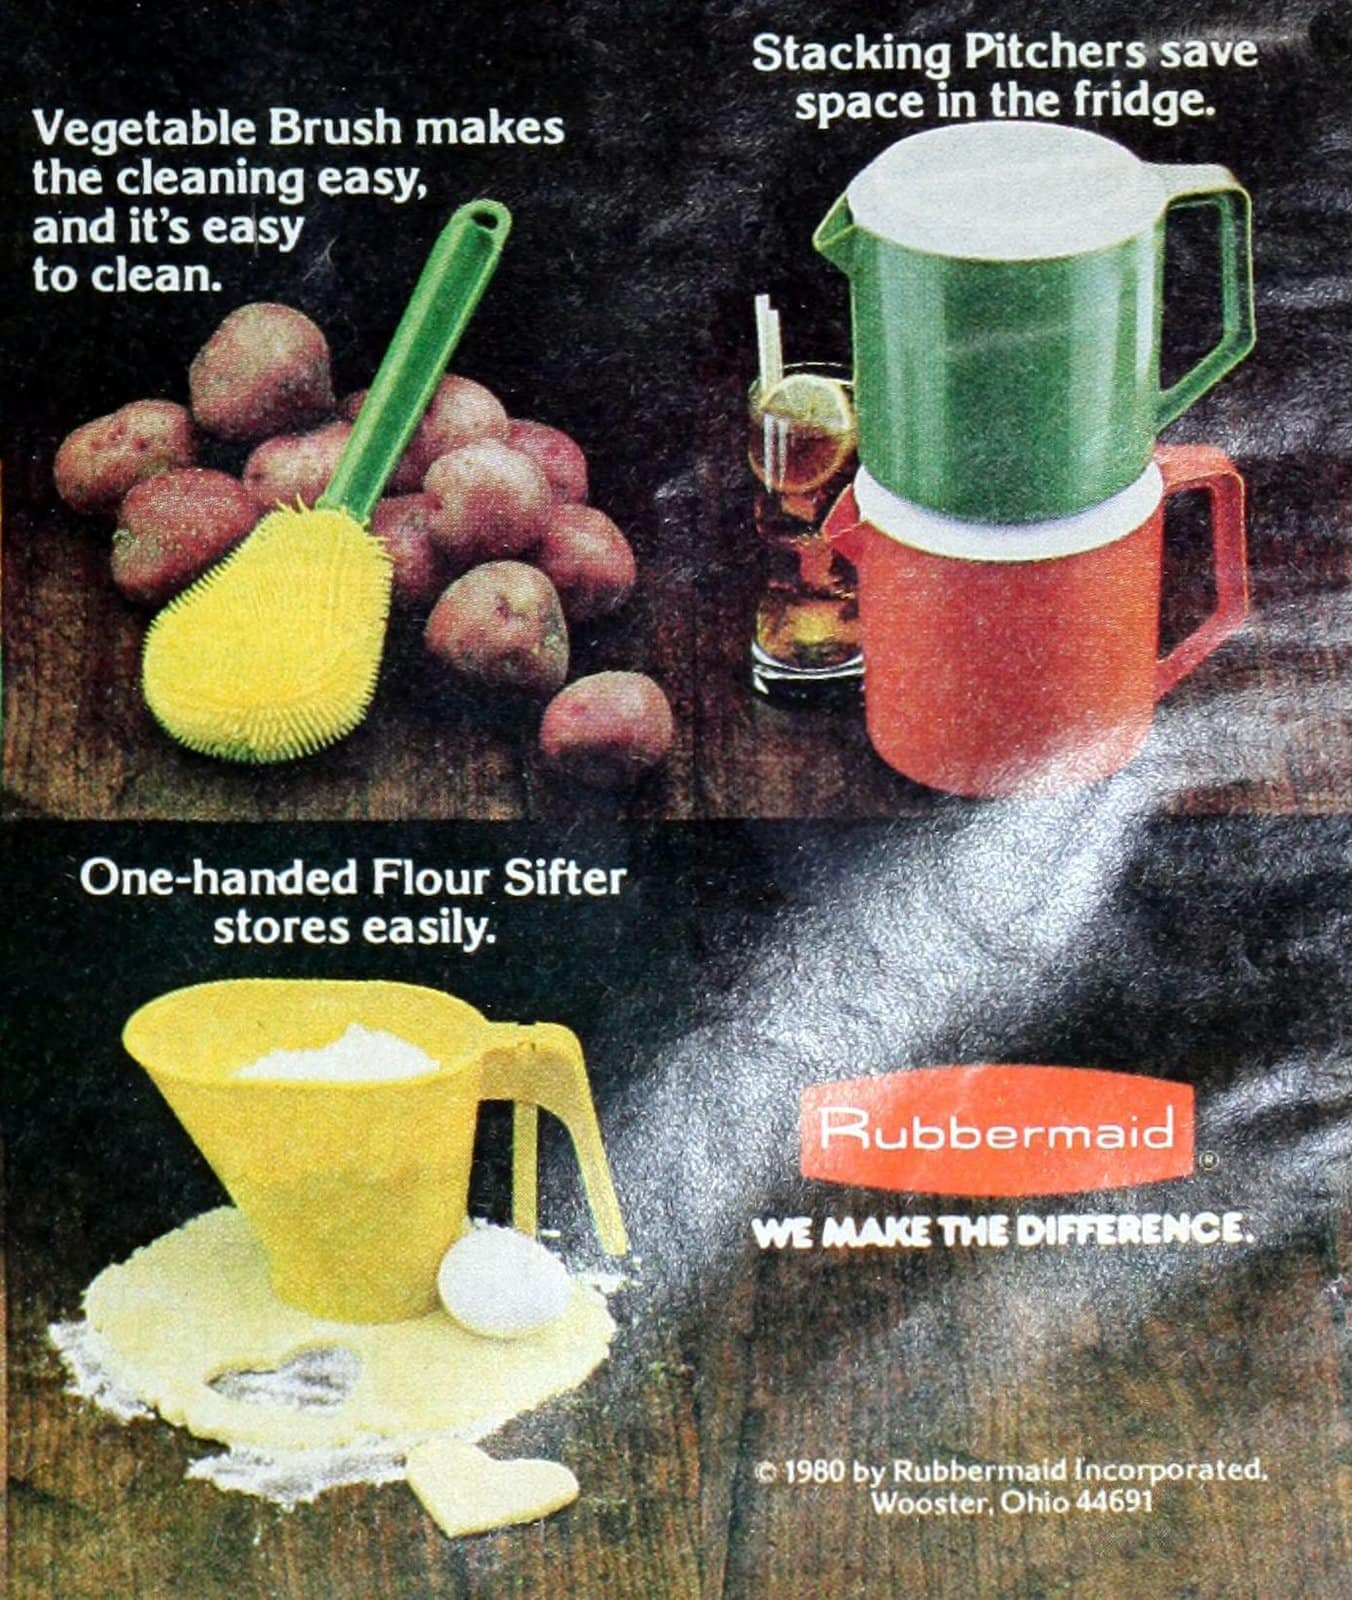 Retro Rubbermaid food storage and utensils from 1980 (4)